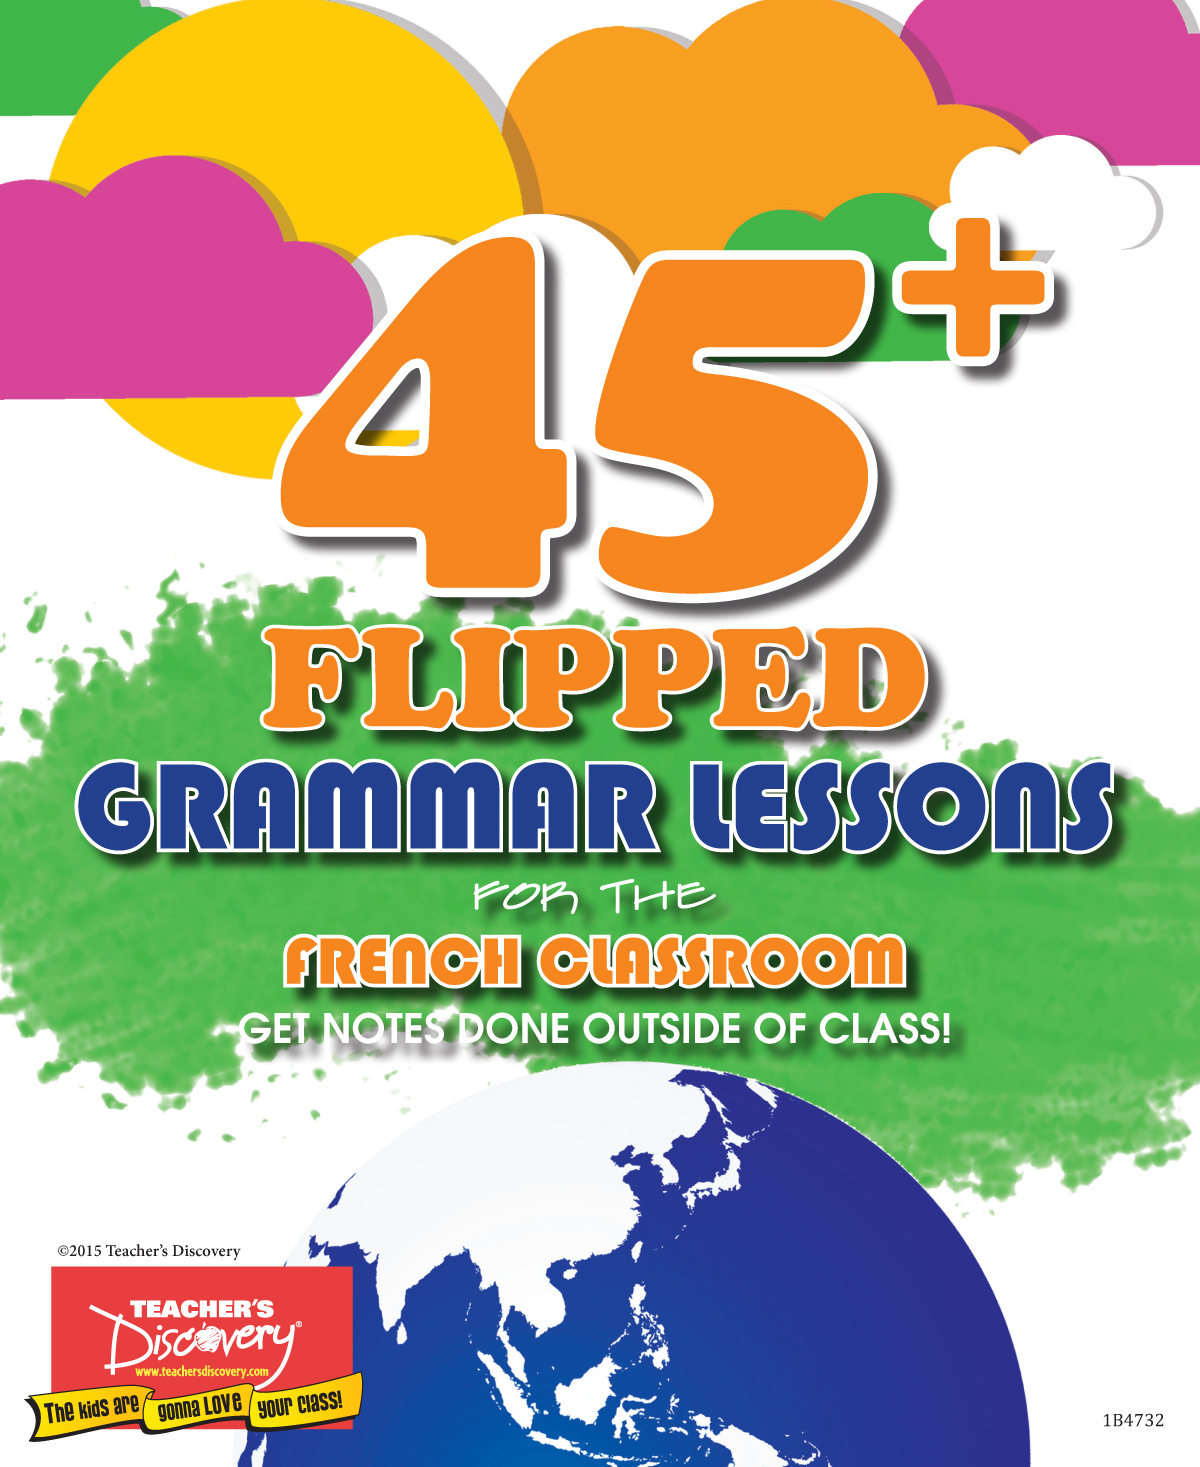 45+ FLIPPED GRAMMAR LESSONS FOR FRENCH CLASSROOM